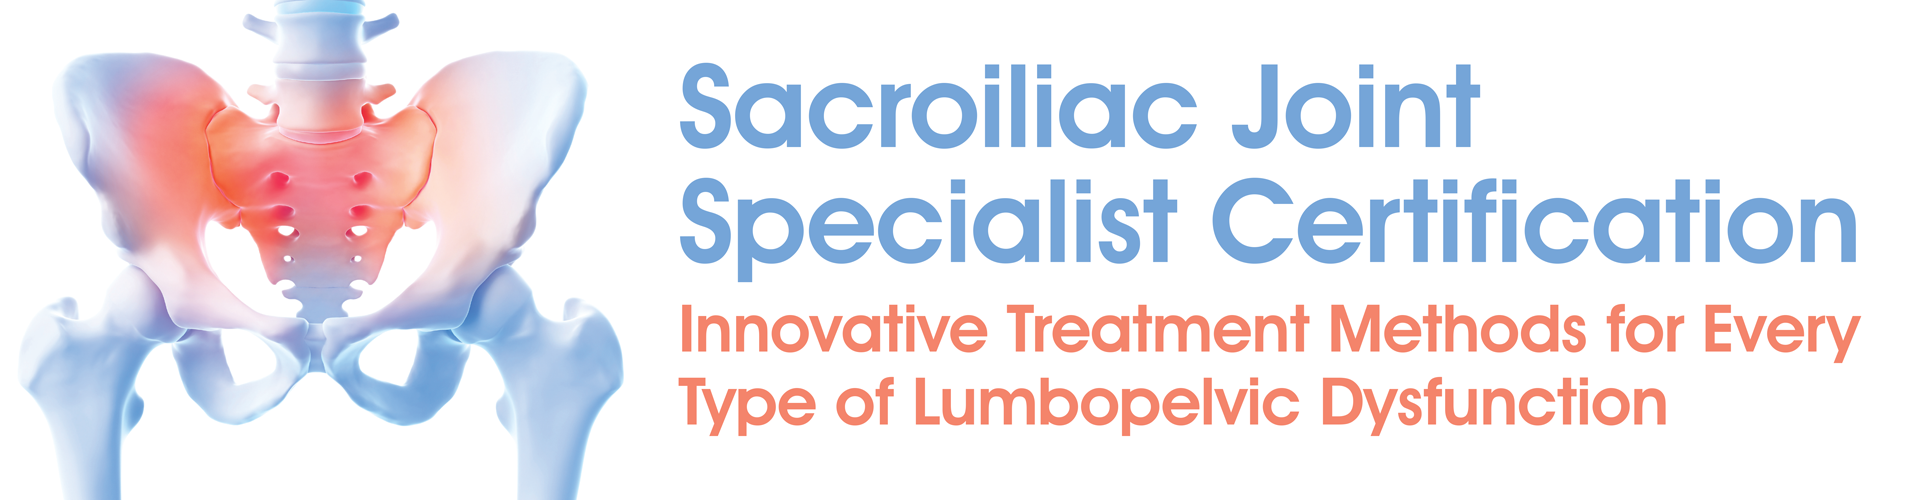 Sacroiliac Joint Specialist Certification: Innovative Treatment Methods for Every Type of Lumbopelvic Dysfunction